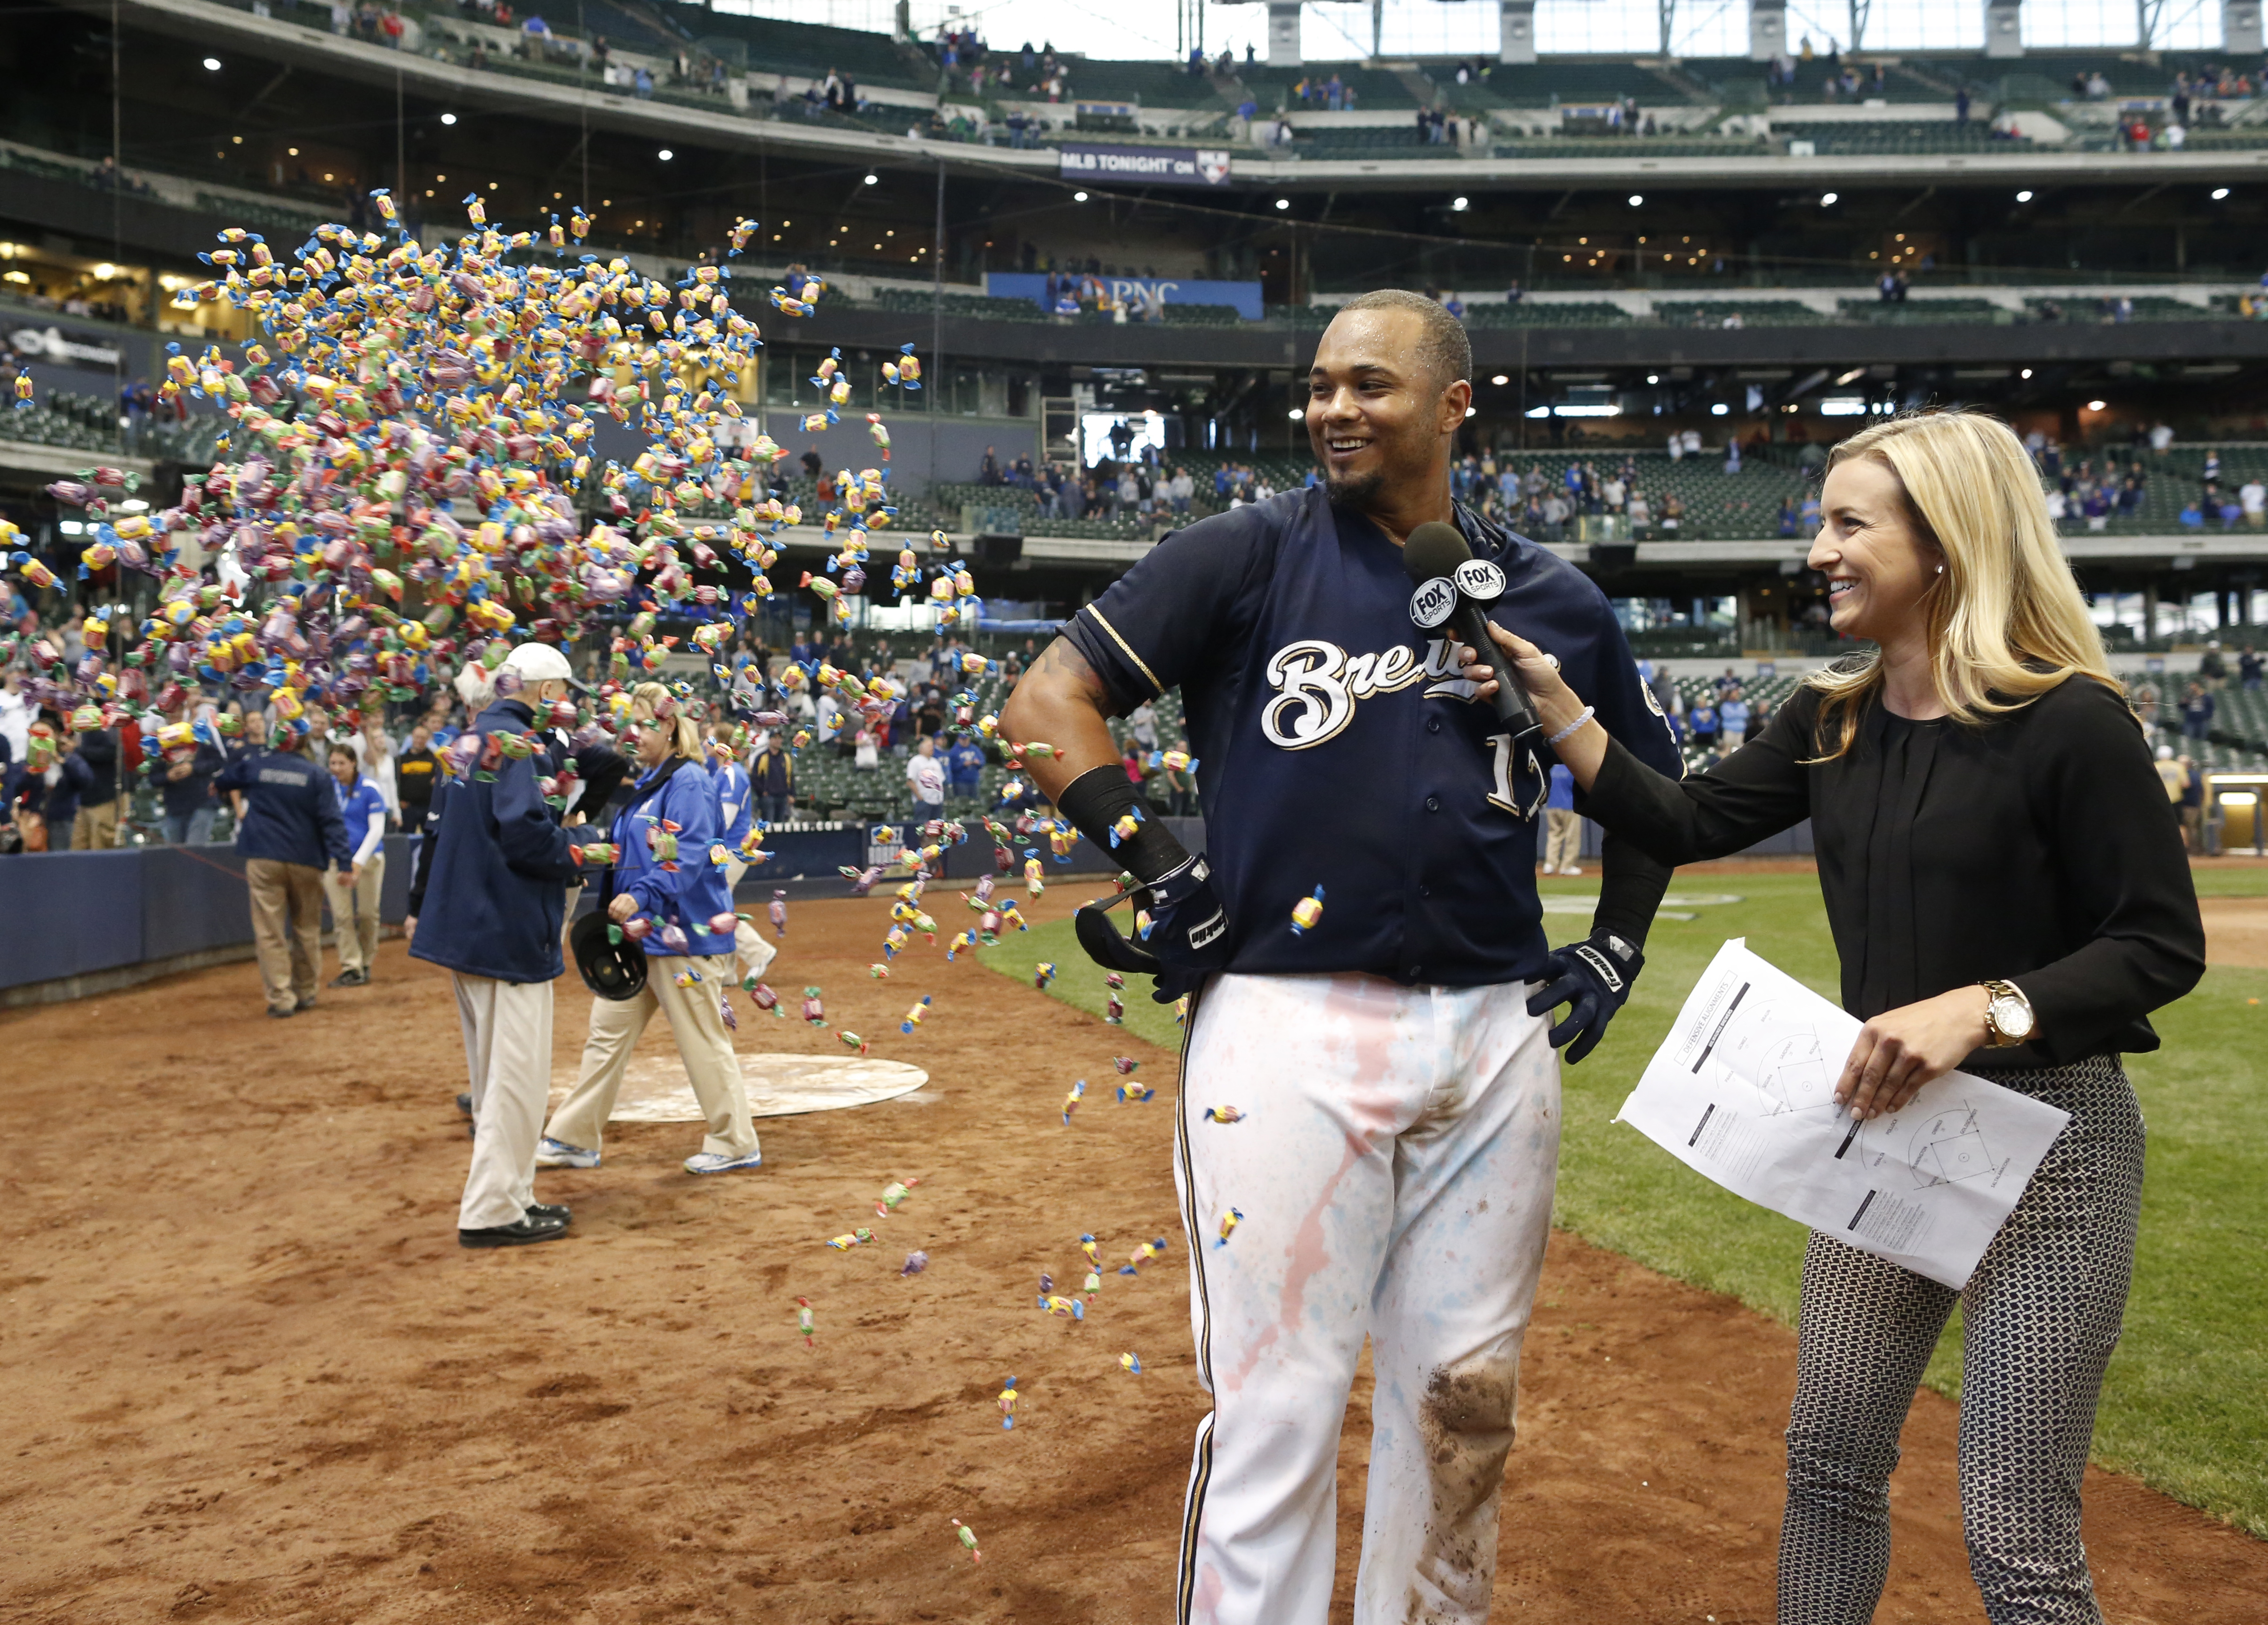 Milwaukee Brewers' Martin Maldonado is showered with bubble gum during a post game interview after their 7-6 victory against the Arizona Diamondbacks in a 17 inning baseball game, Sunday, May 31, 2015, in Milwaukee. Maldonado hit the game winning home run